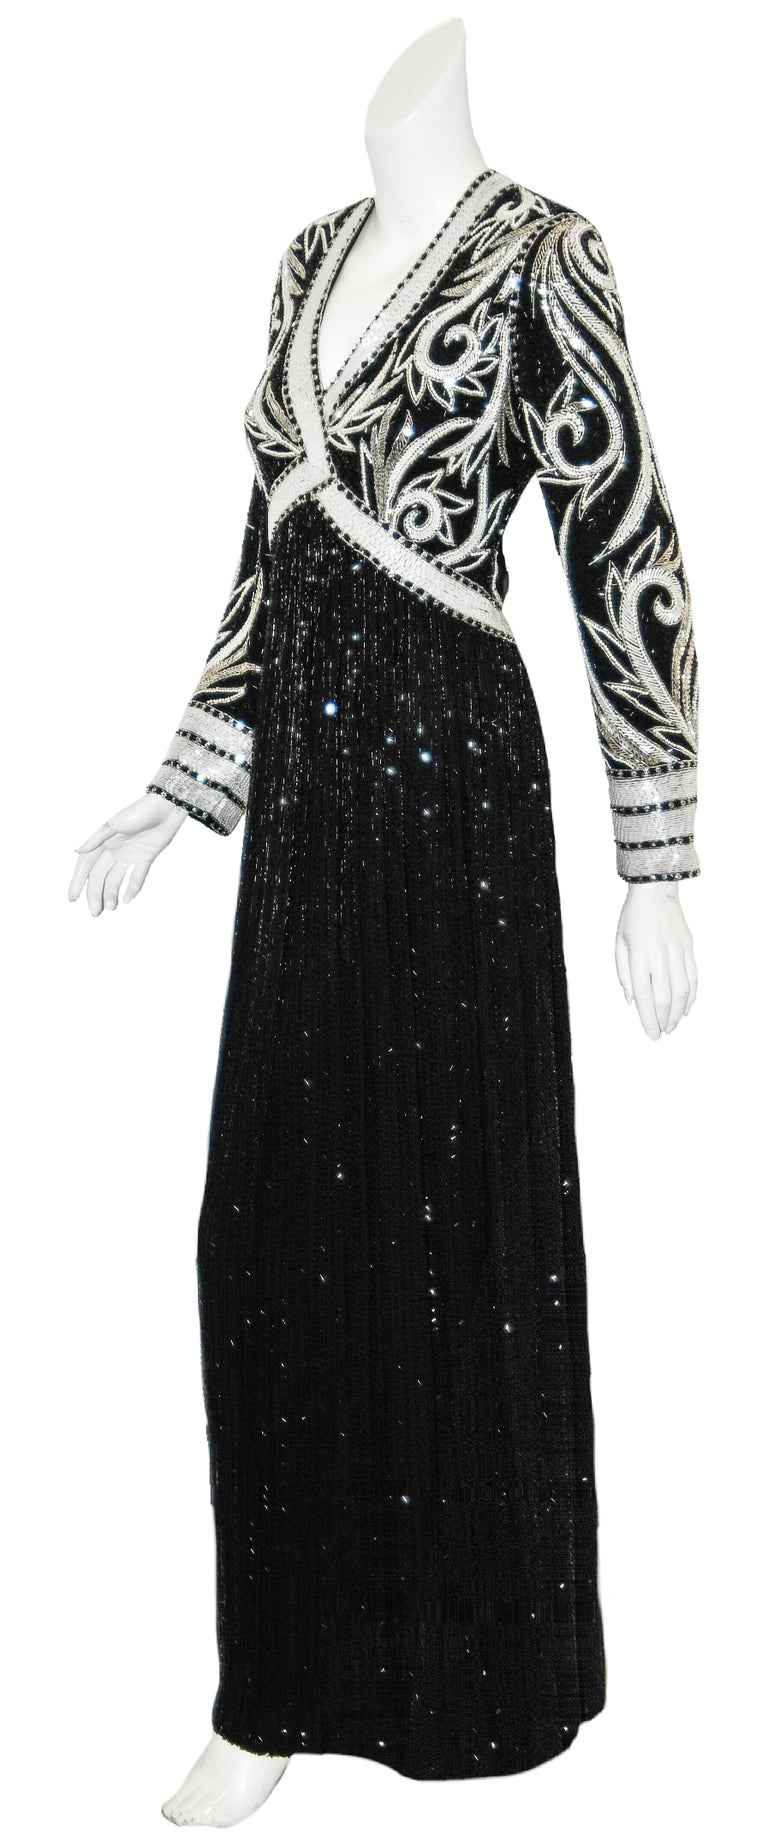 Bob Mackie black and white long sleeves spiral print fully beaded gown is in mint condition.  Mackie, best known for his top designer relationship with Cher, also designs gowns and stunning dresses for special occasions for elegant ladies!  This